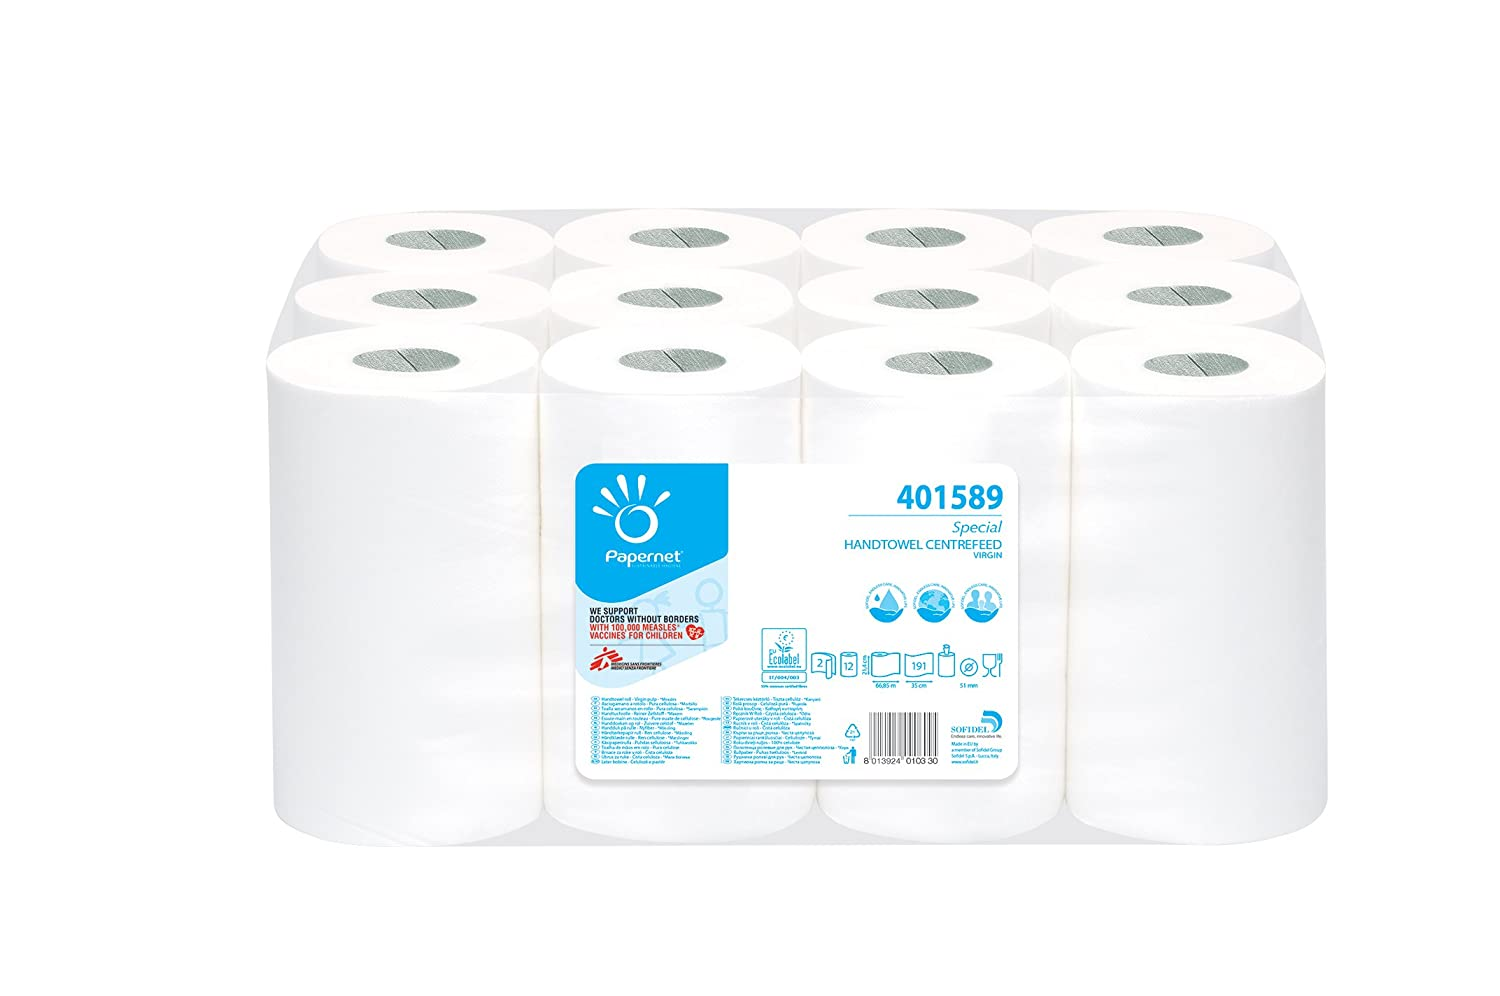 Pack of 12 /White Papernet Special 401589/Centrefeed Roll Towels Pure Cellulose Ecolabel/